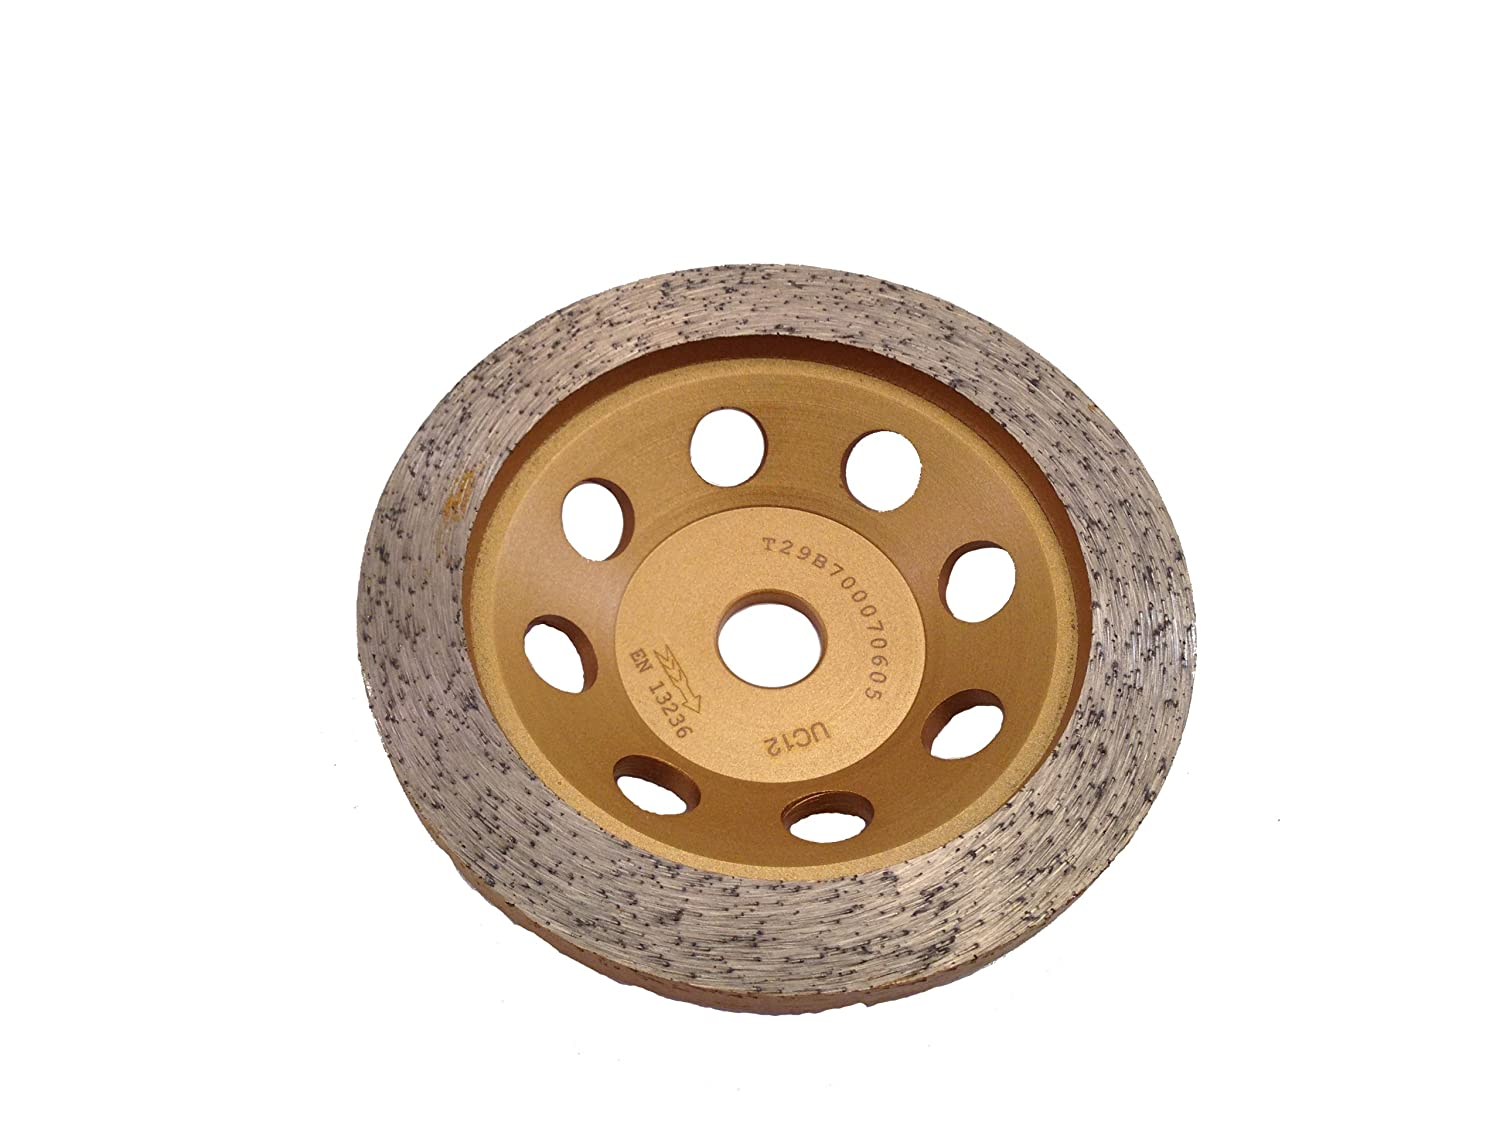 PRODIAMANT premium diamond cup wheel granite suitable for Makita PC1100 - 110 mm x 15 mm gold PDX829.000